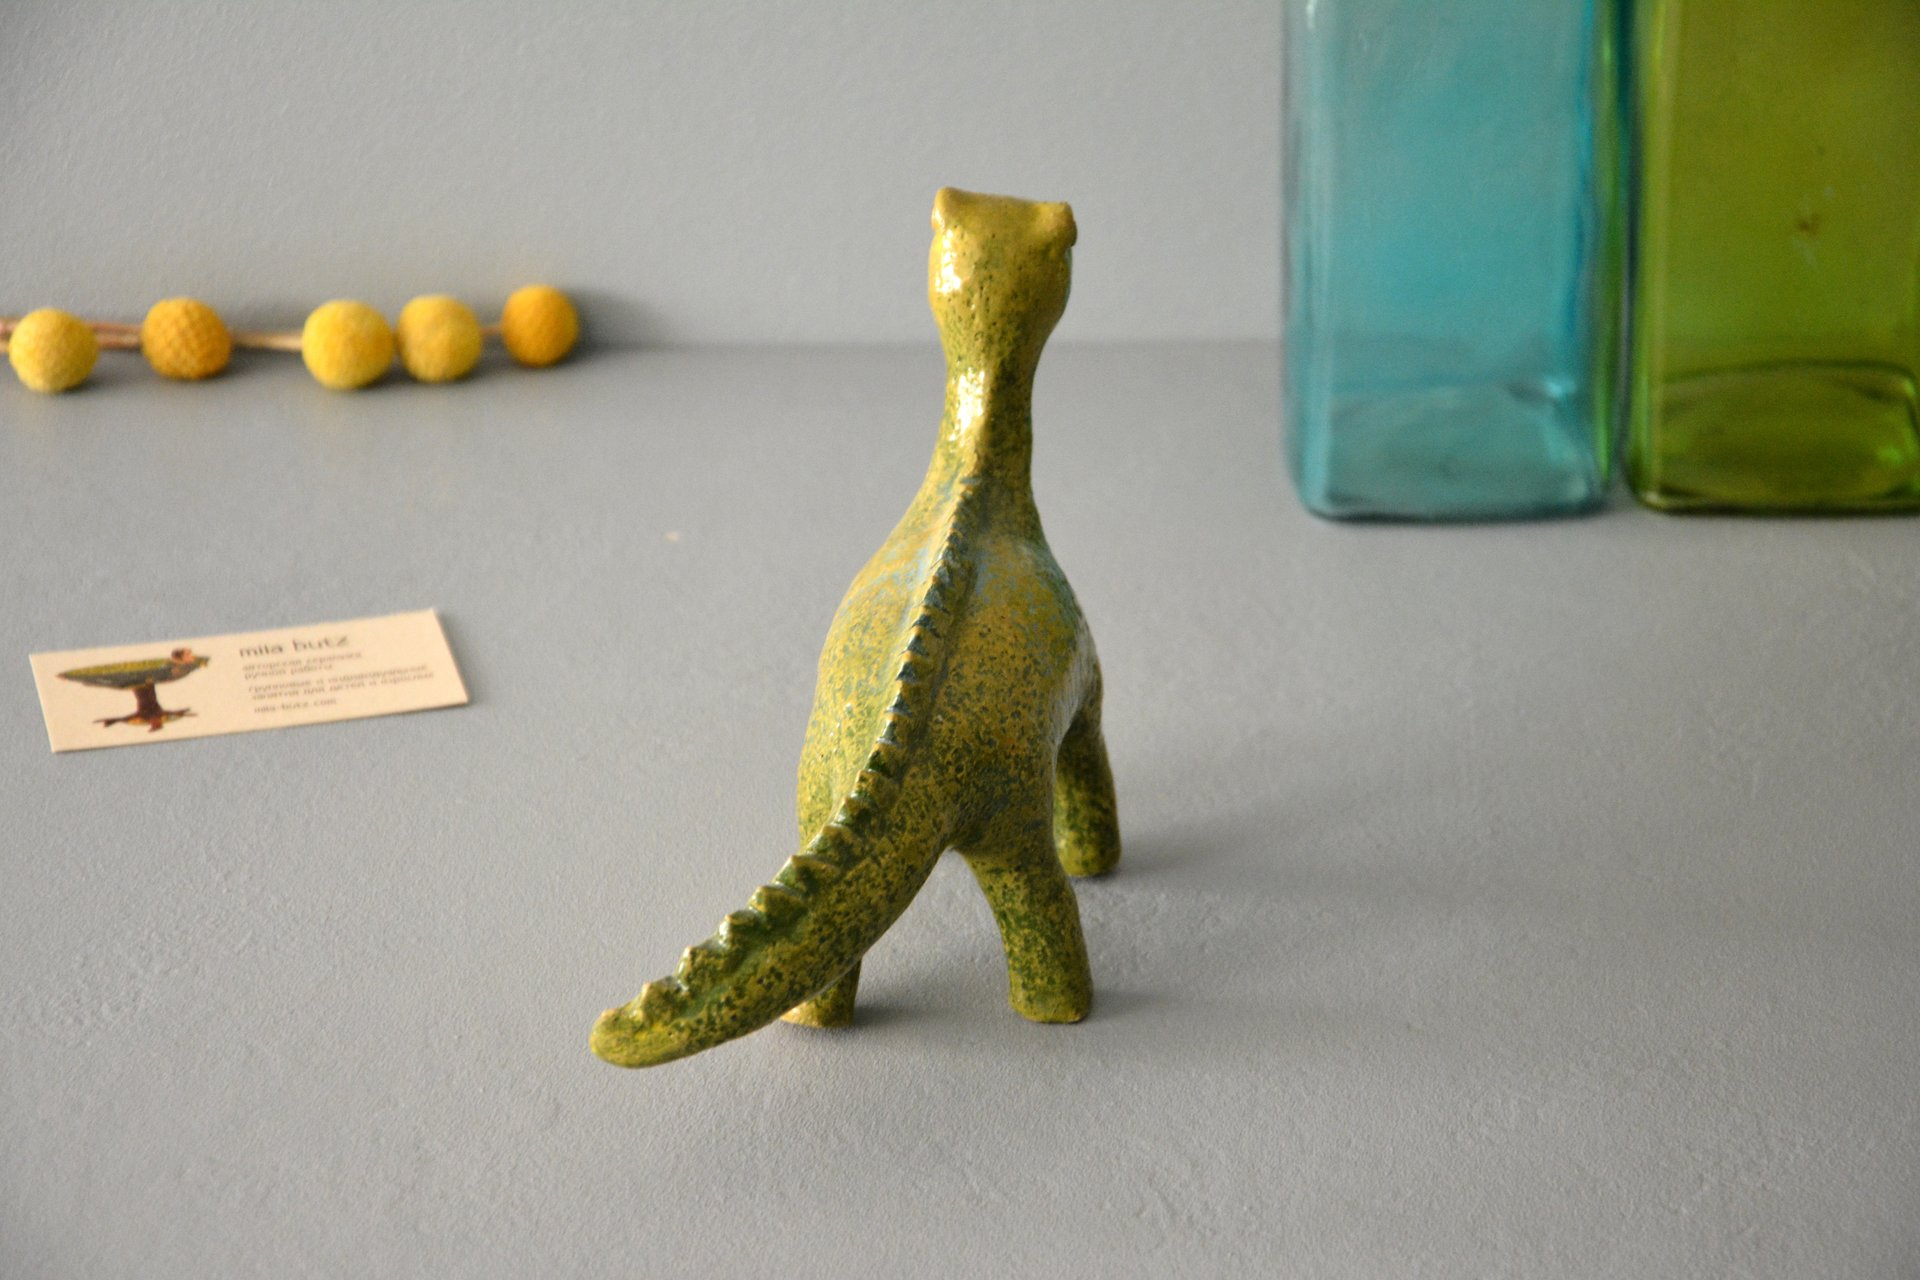 Dino - Ceramic other figures, height - 20 cm, photo 3 of 5.